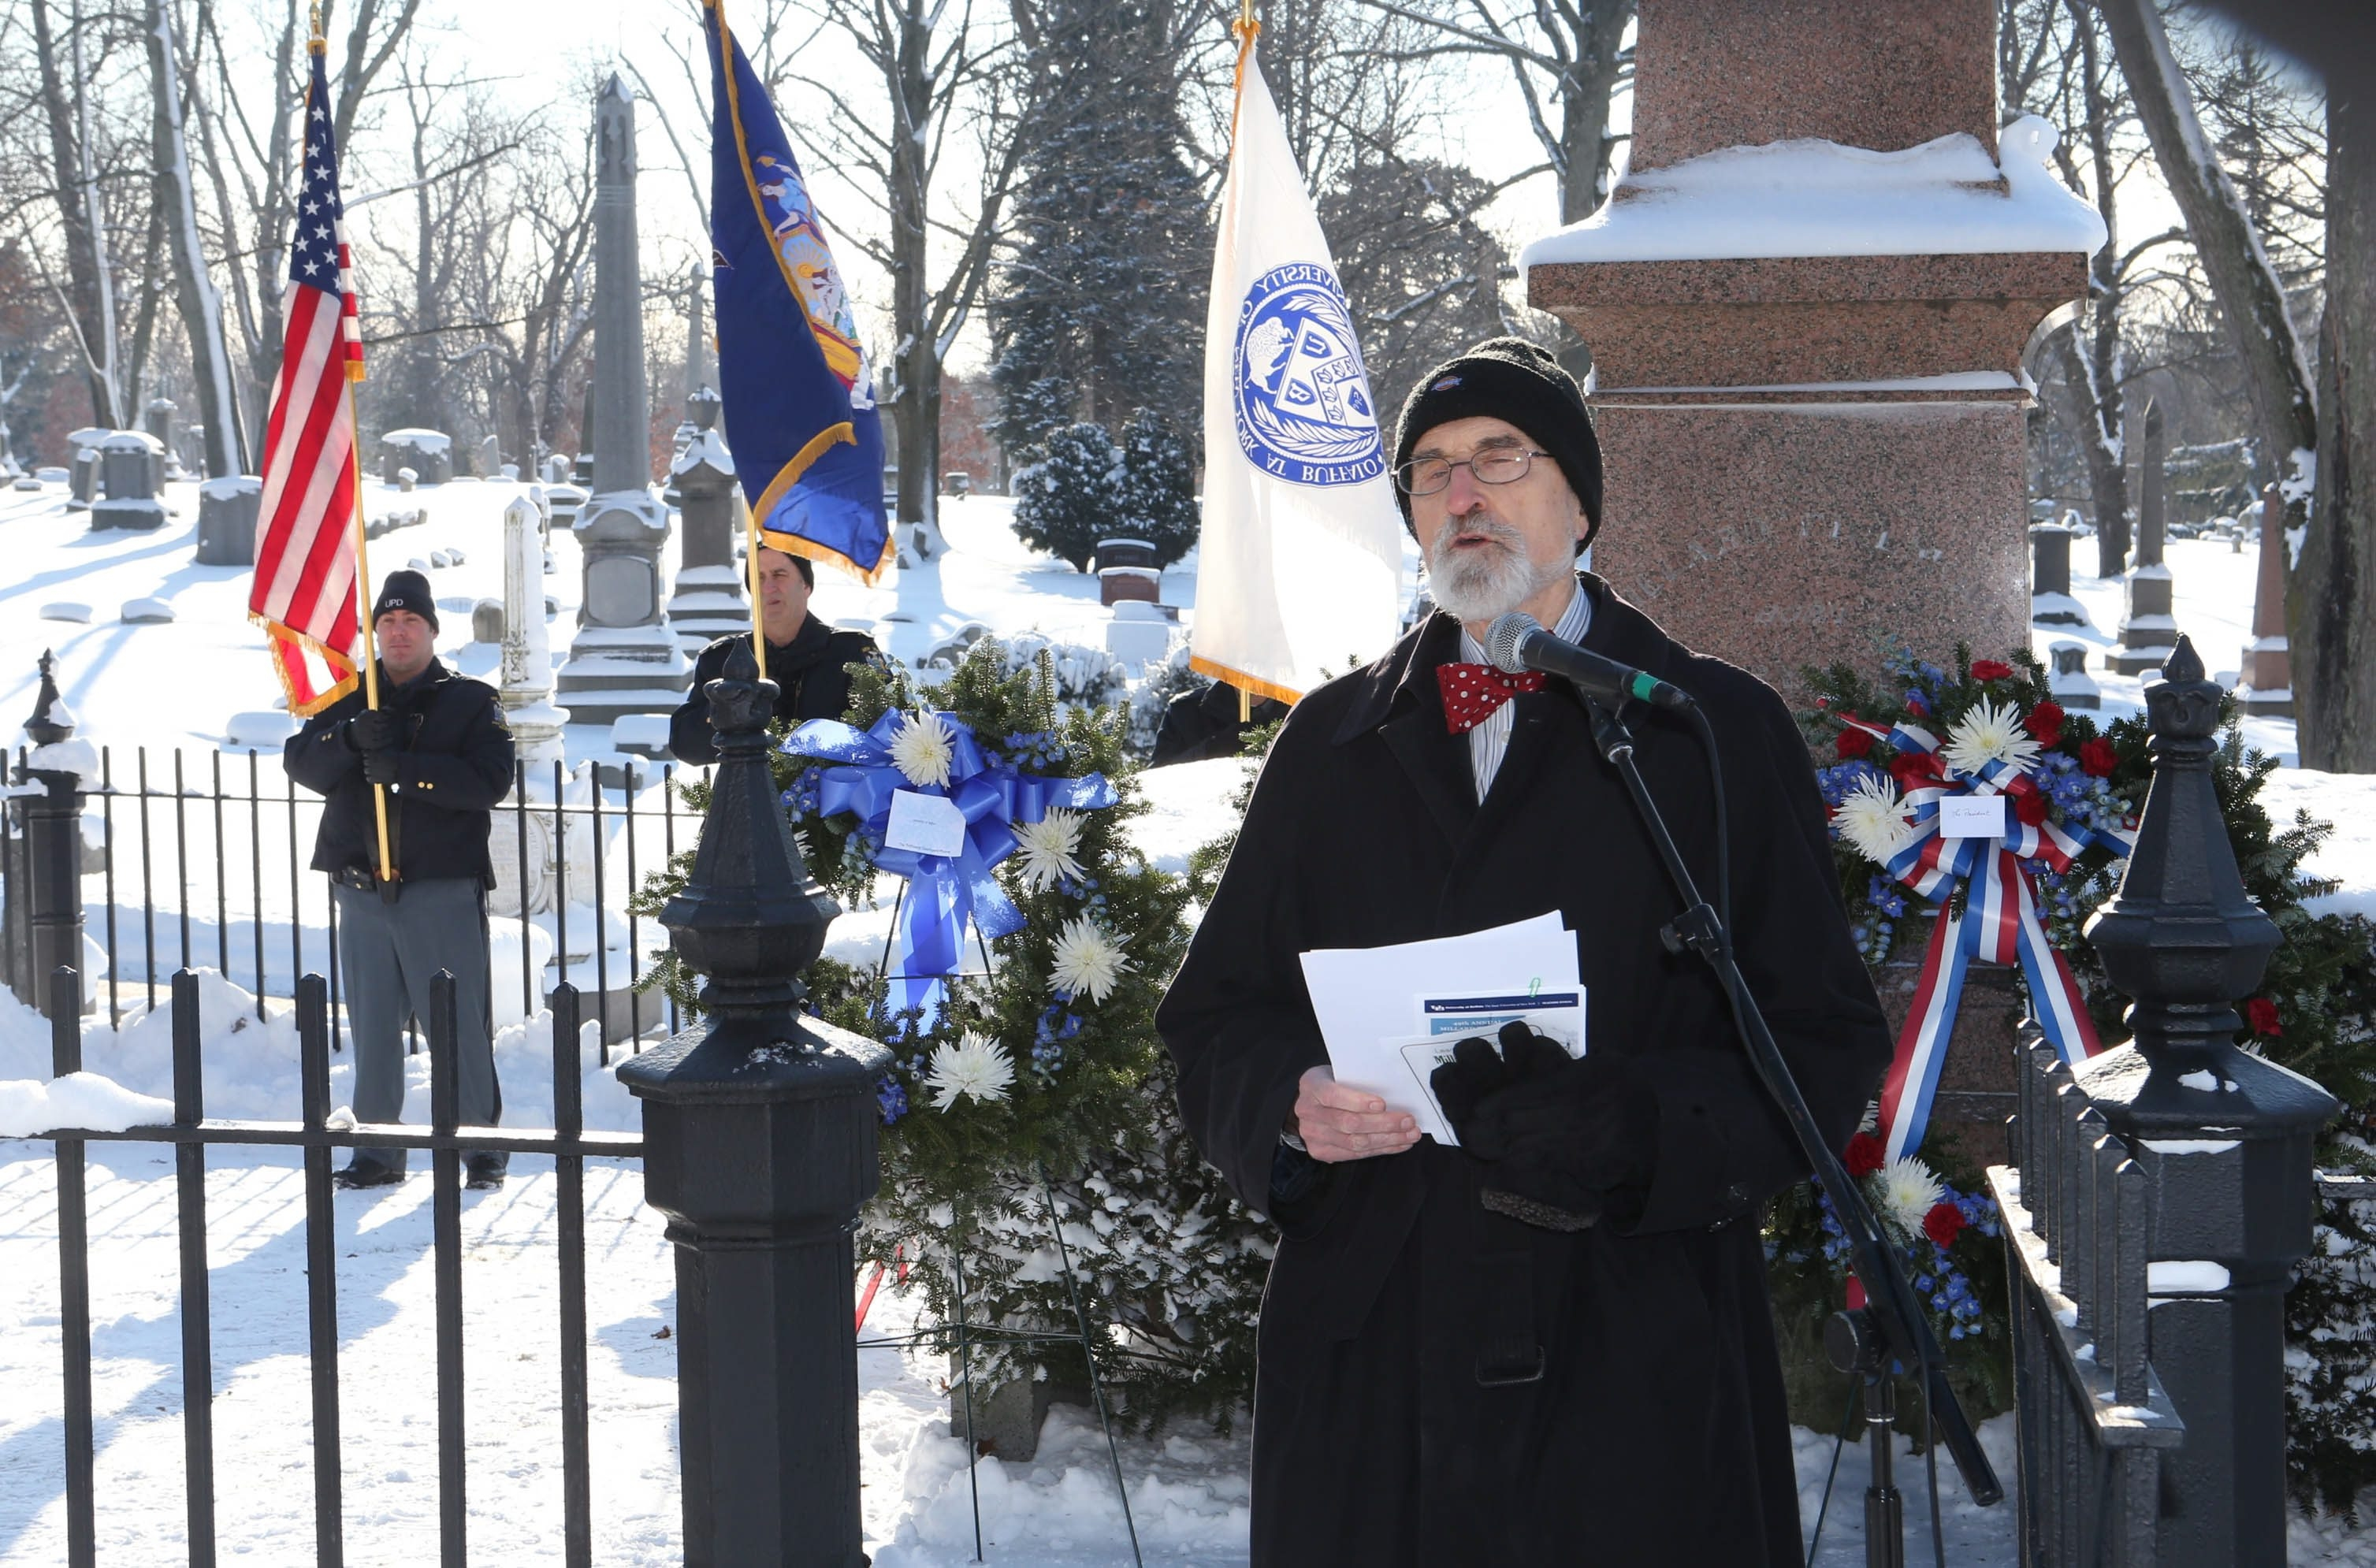 SUNY Distinguished Professor Claude E. Welch gives the address at the annual commemoration of Millard Fillmore's birthday at his gravesite in Forest Lawn on Thursday.